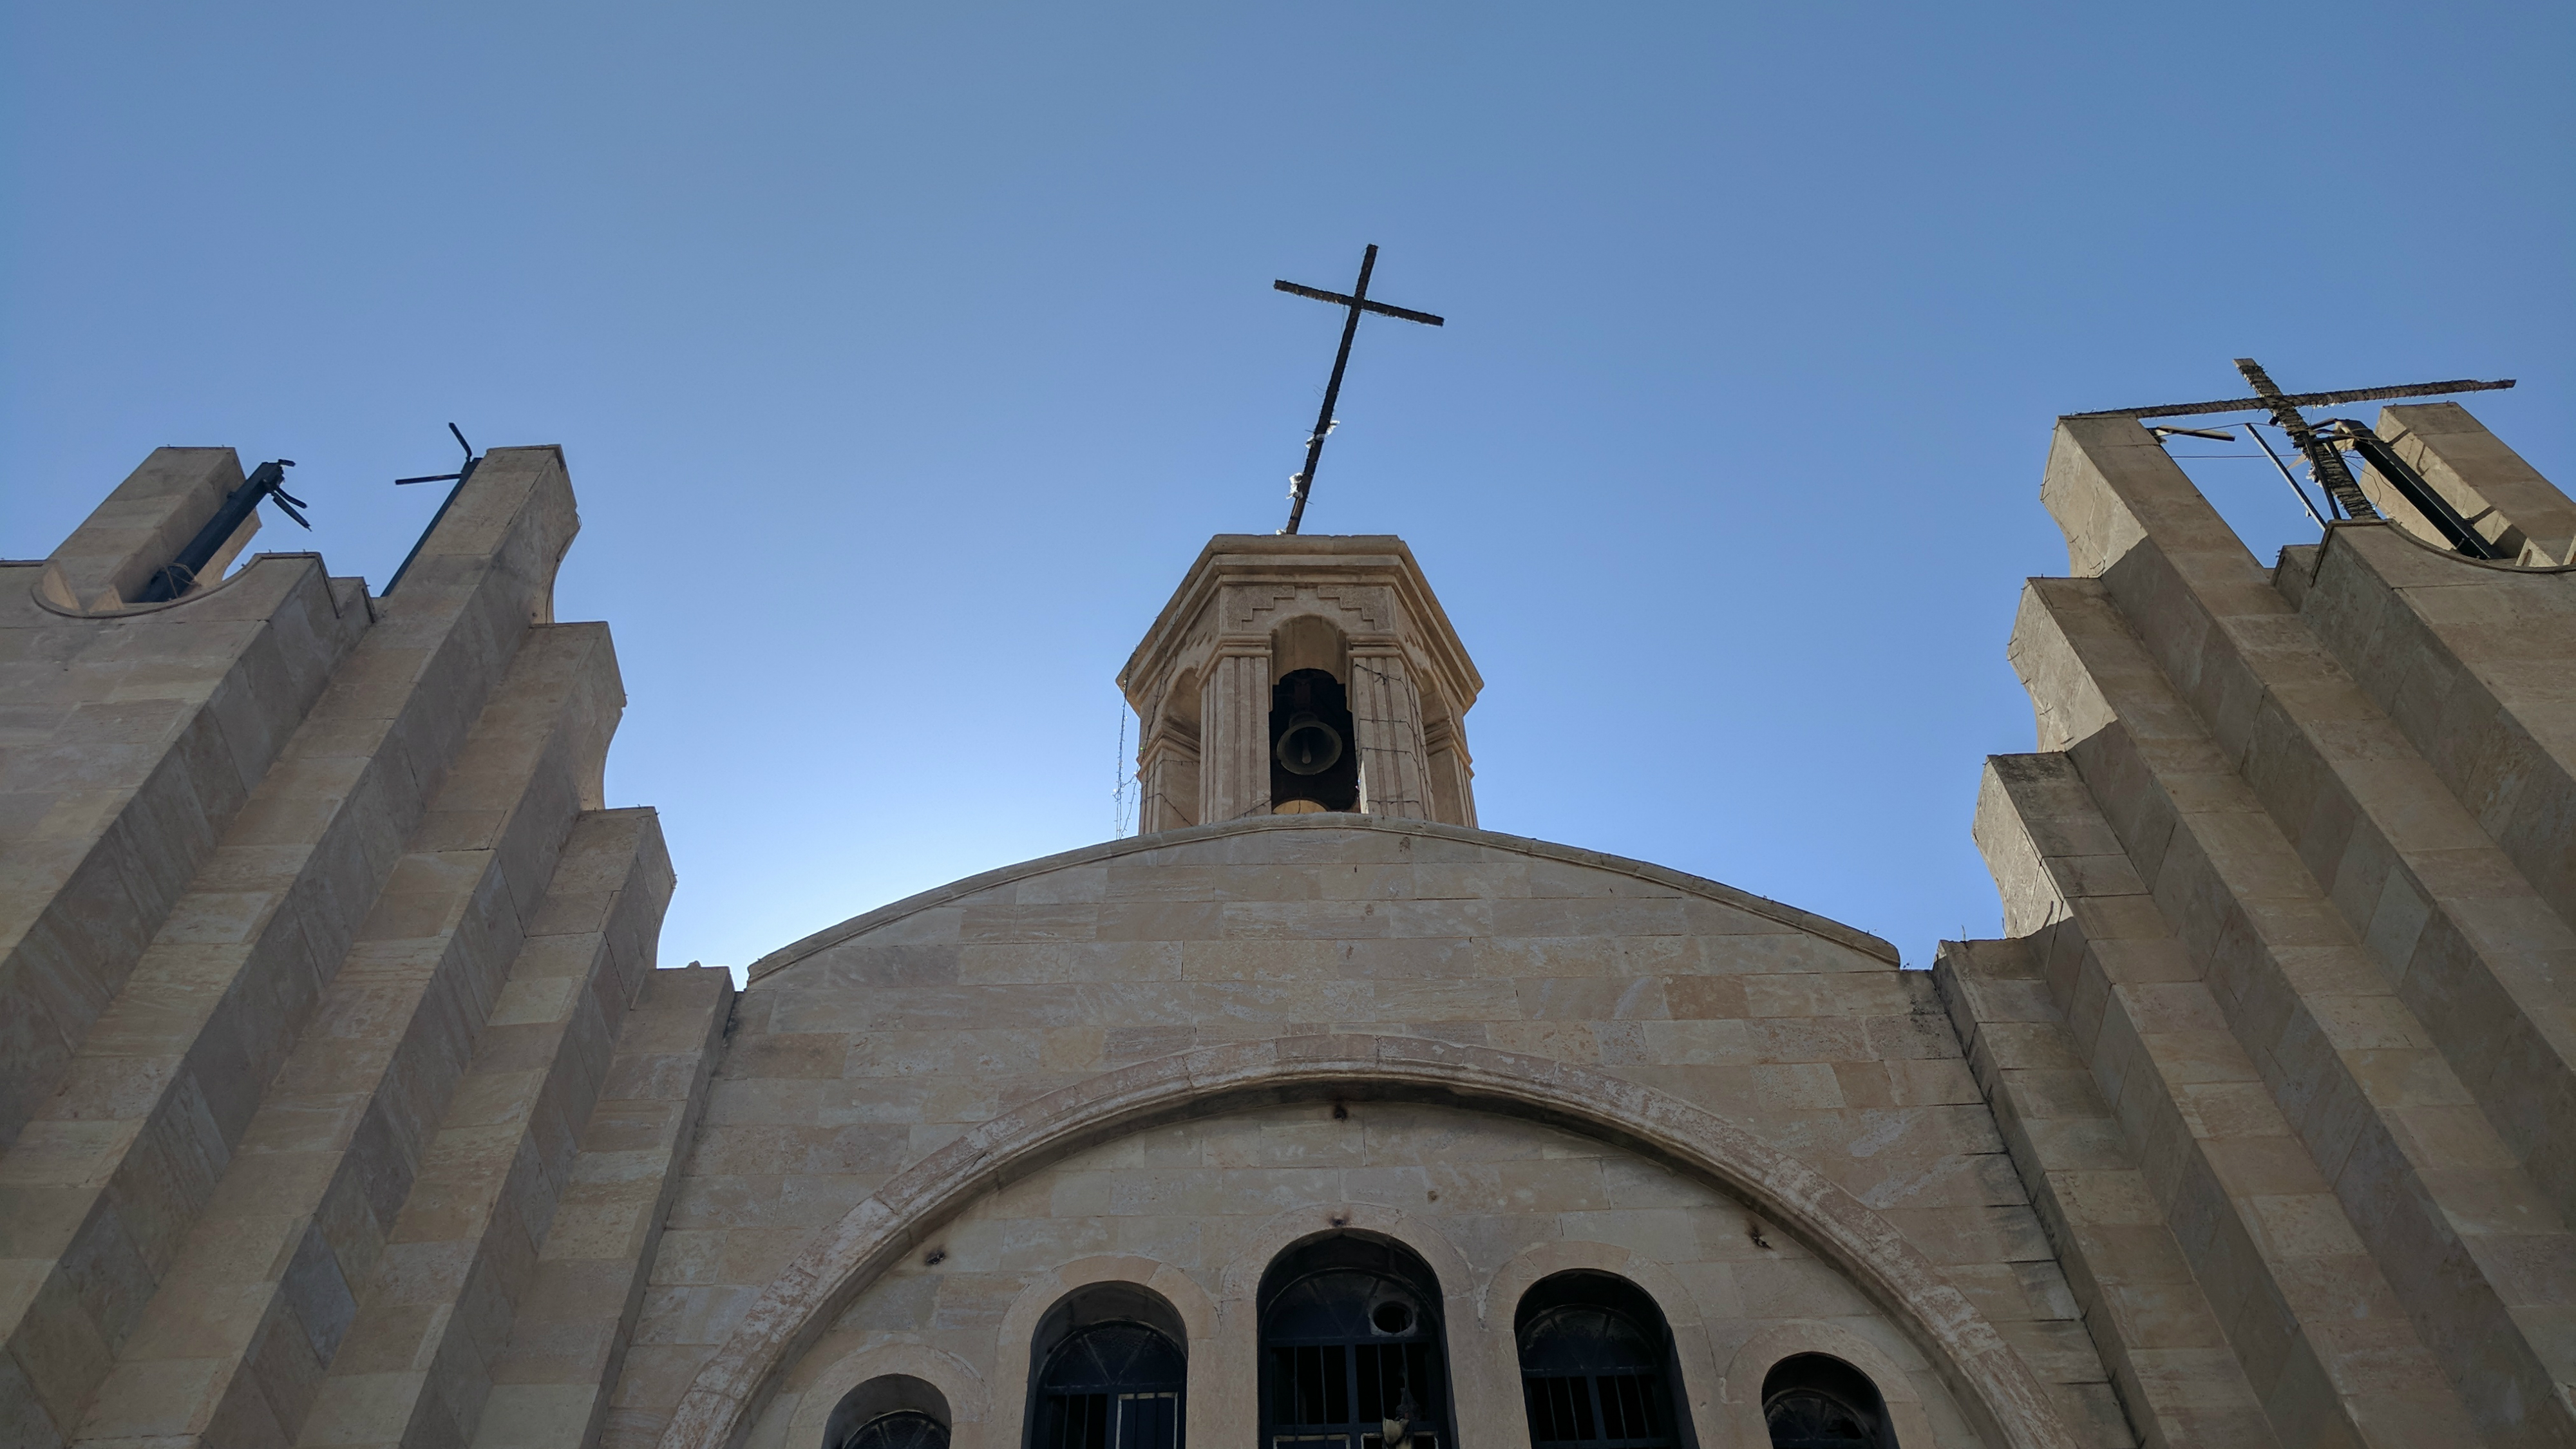 St. Shmuni Church in Bartella, Iraq, shows damage sustained while the town was under ISIS control for two years.